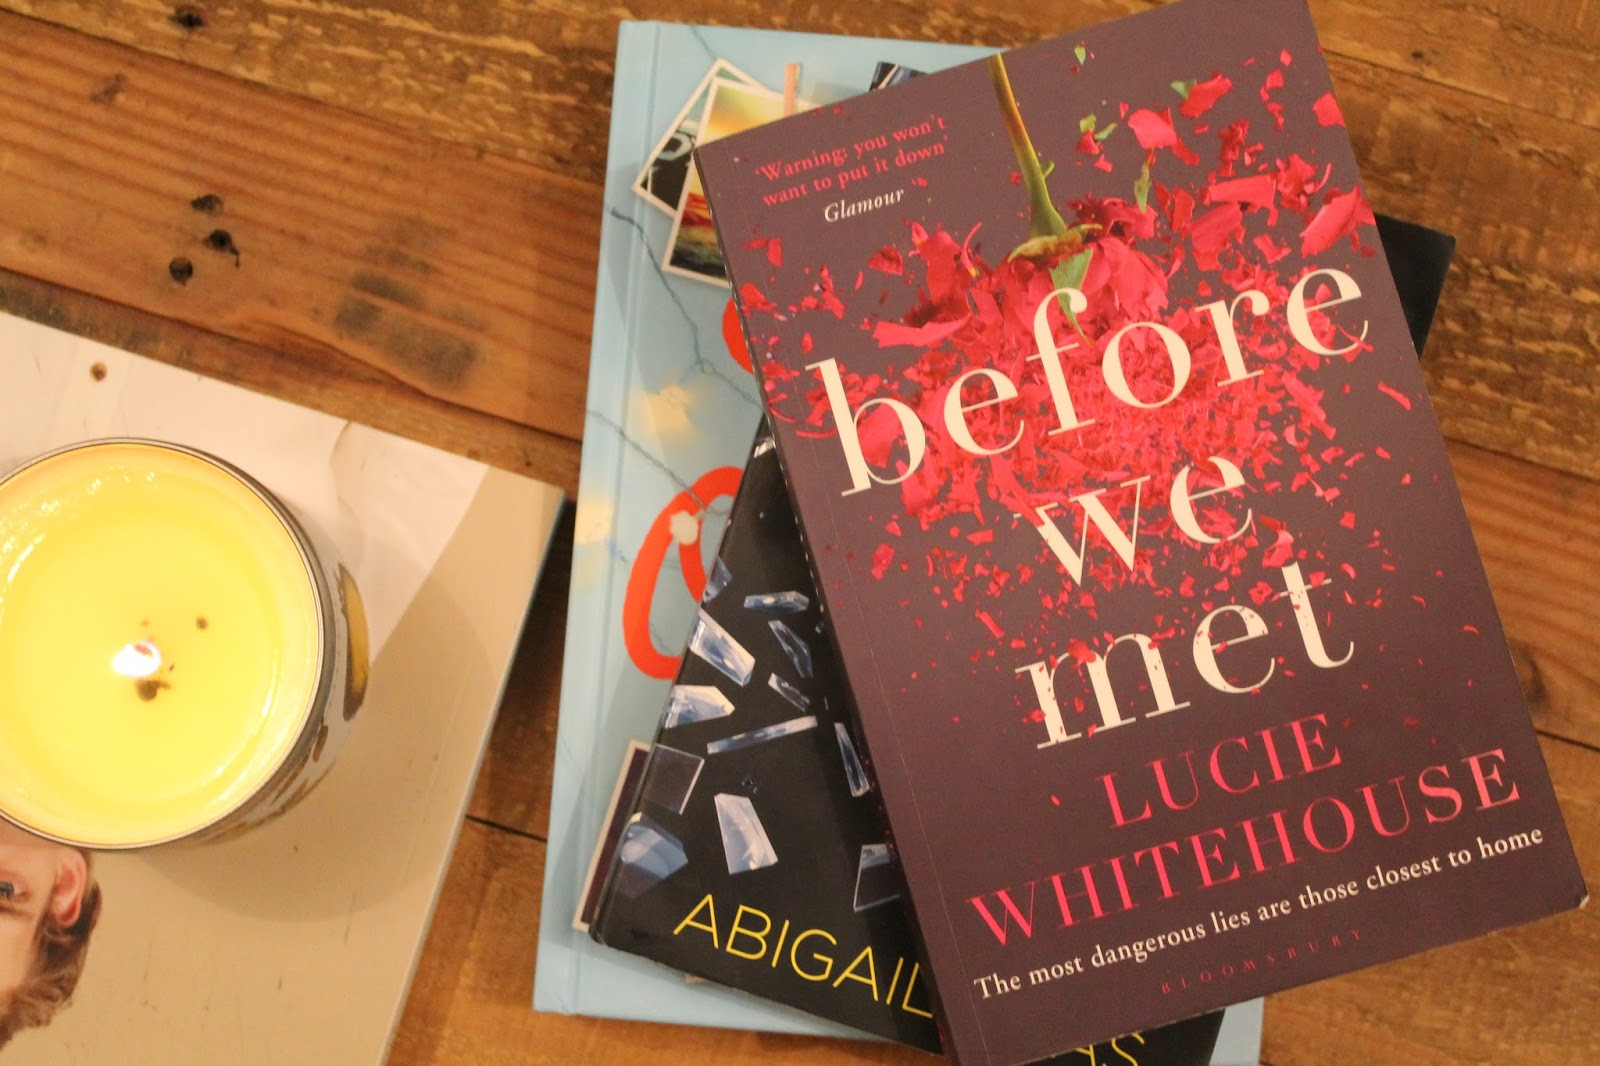 Gingerbread Smiles - Book Review, Lucie Whitehouse - Before We Met